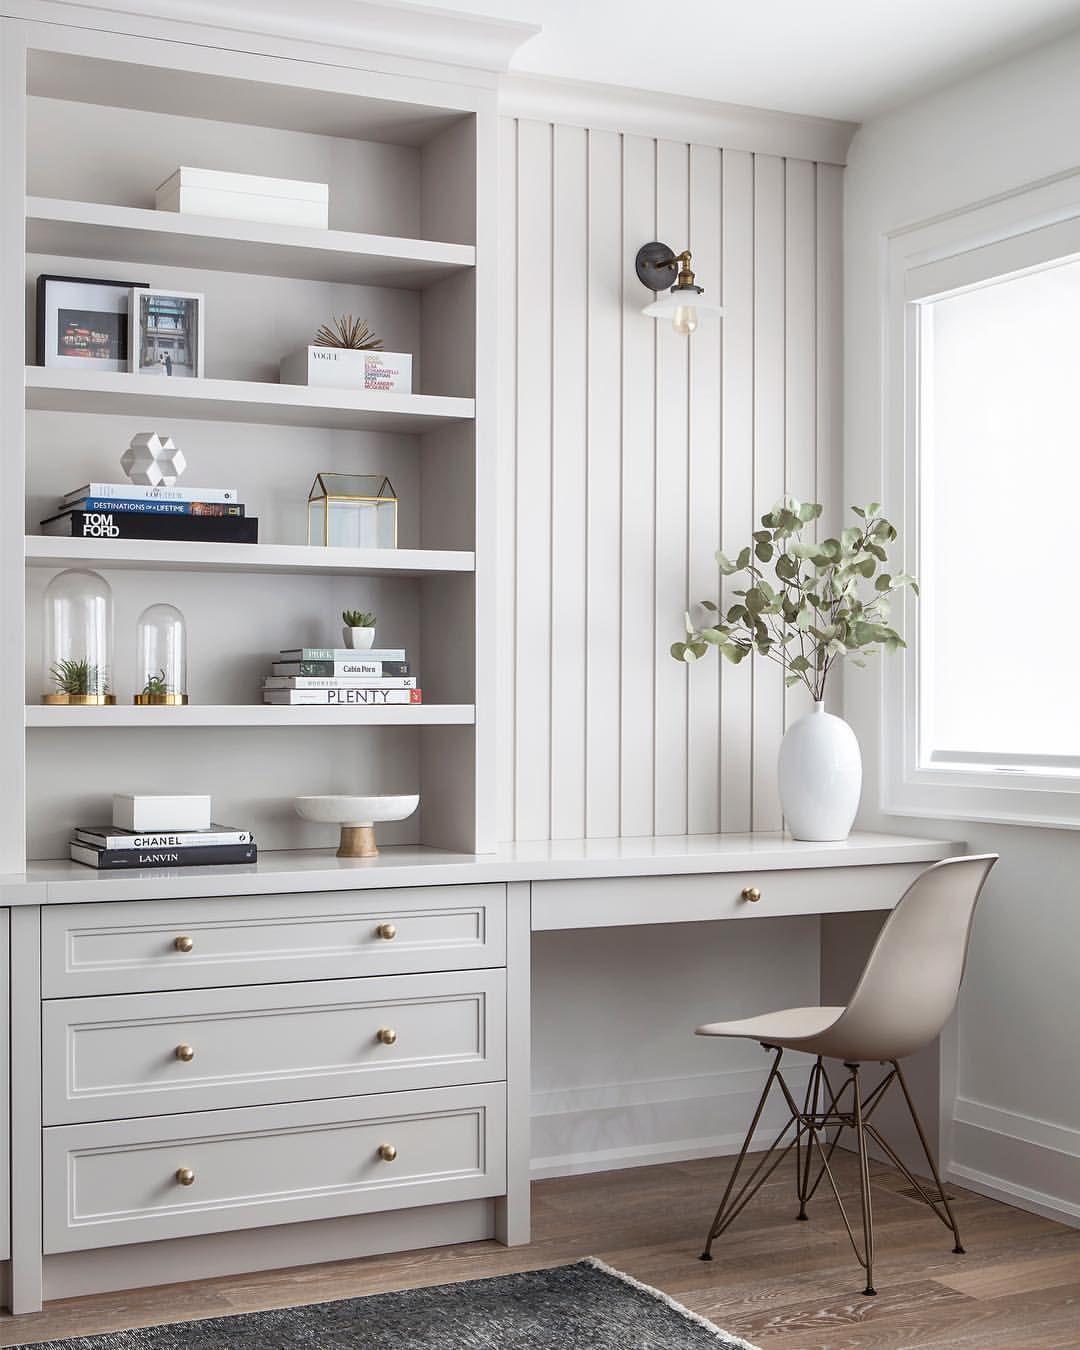 Sweet Little Desk Nook Off A Spacious, Light-filled Family